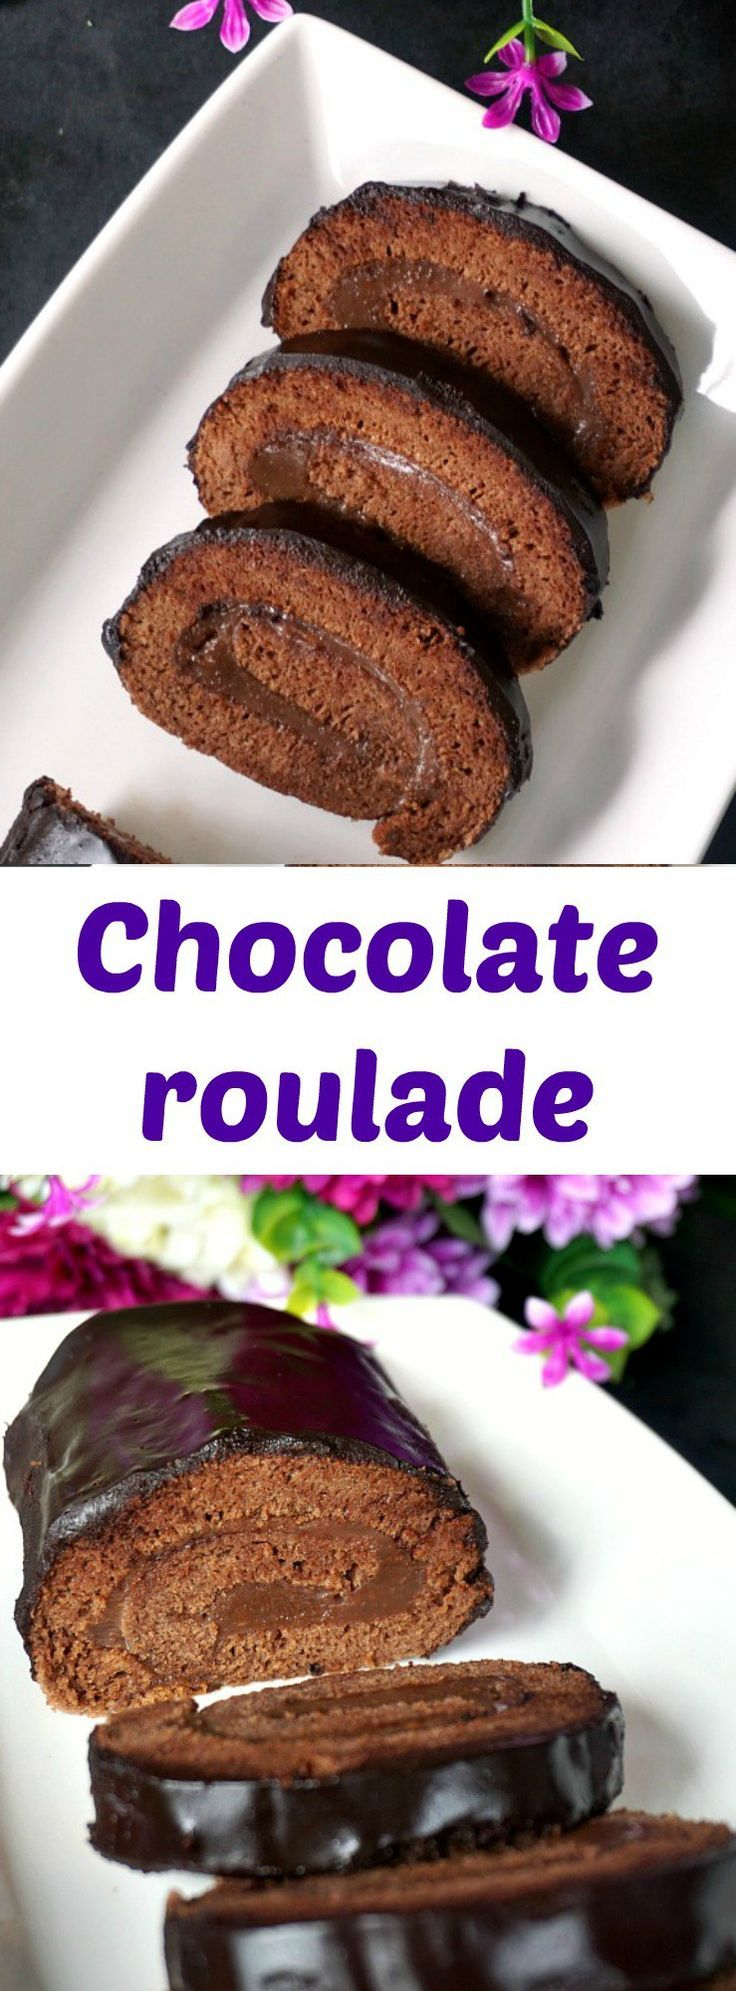 Chocolate roulade or Chocolate Swiss Roll, the ultimate dessert for all the chocoholics out there. Super easy to make and so delicious.